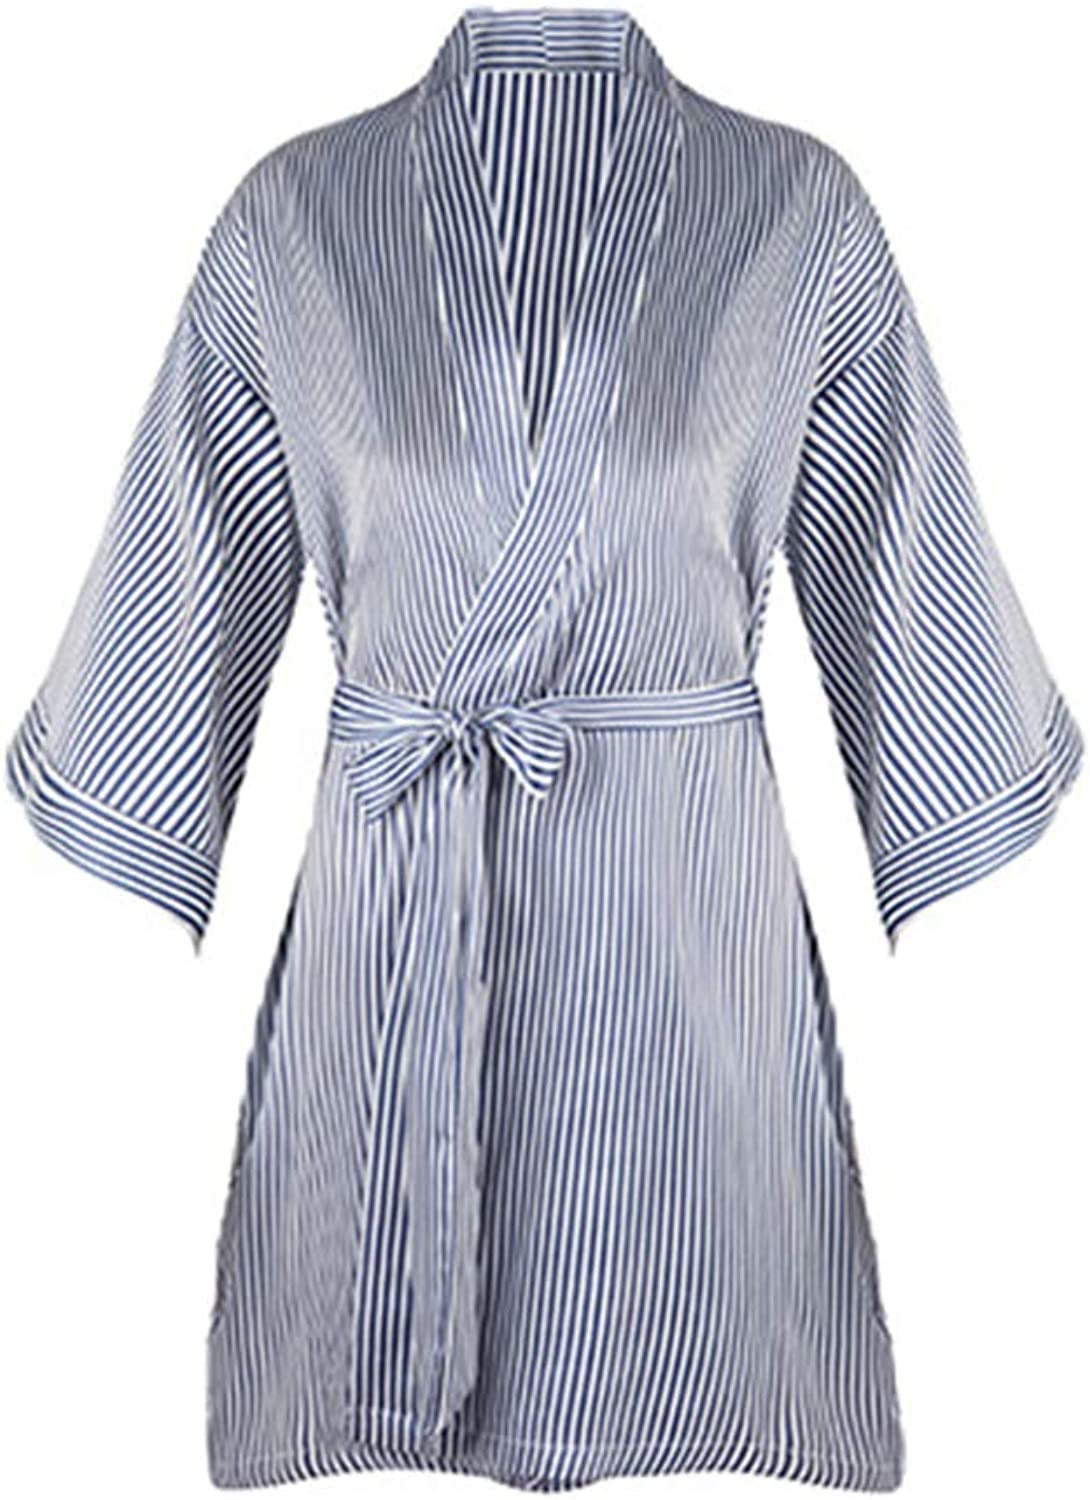 LIULIFE Dressing Gown Lady's Nightgown Striped Loose Bathrobe Summer Thin Nightdress Cardigan Casual Housecoat